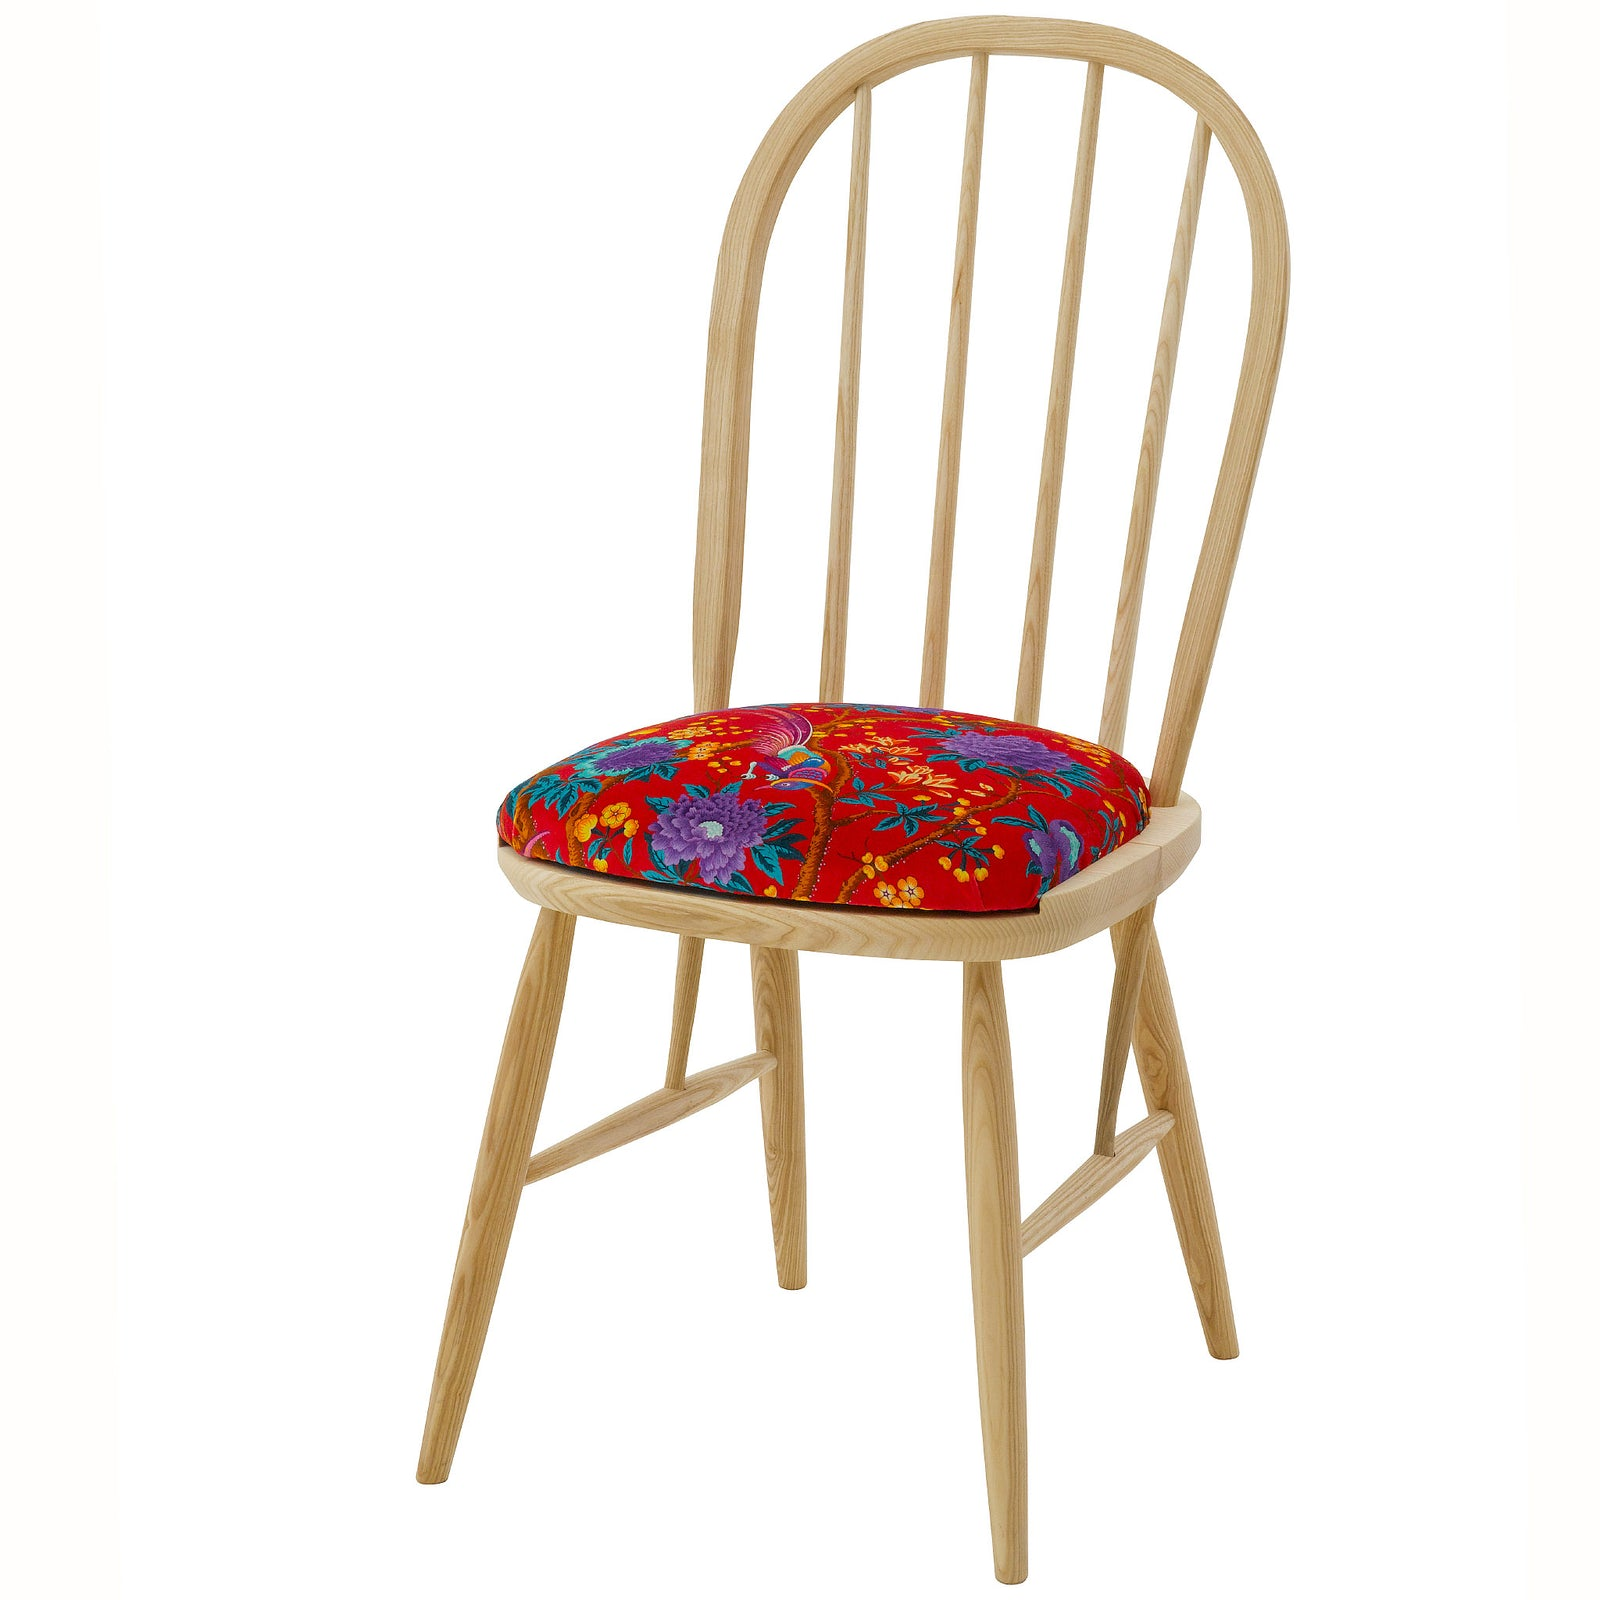 The Elkin Dining Chair Upholstered in  Elysian Paradise by Liberty of London